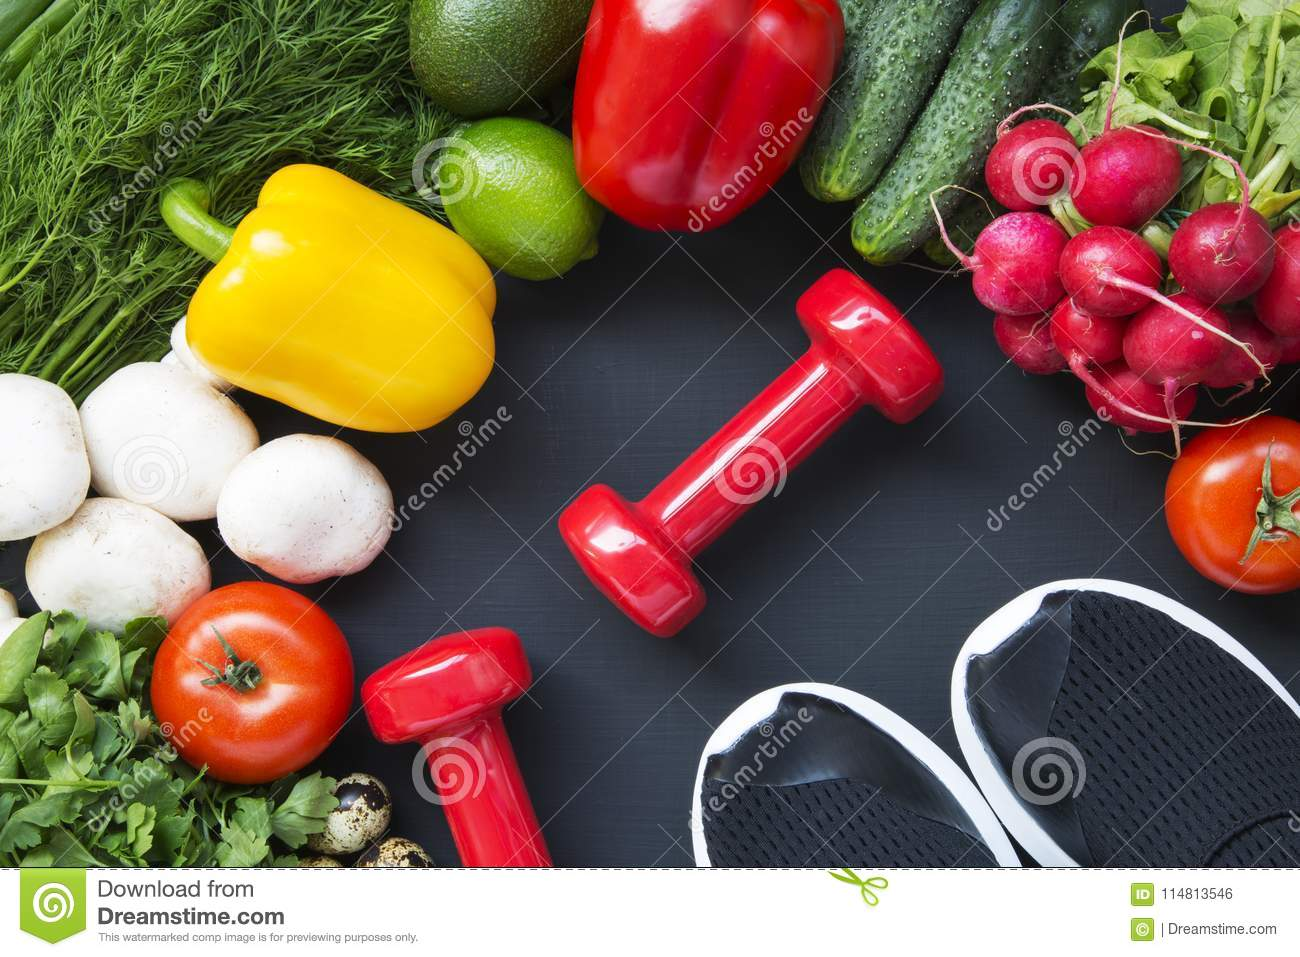 Healthy food background. Ingredients for cooking. Top view. Copy space. Dark background. Fitness diet.